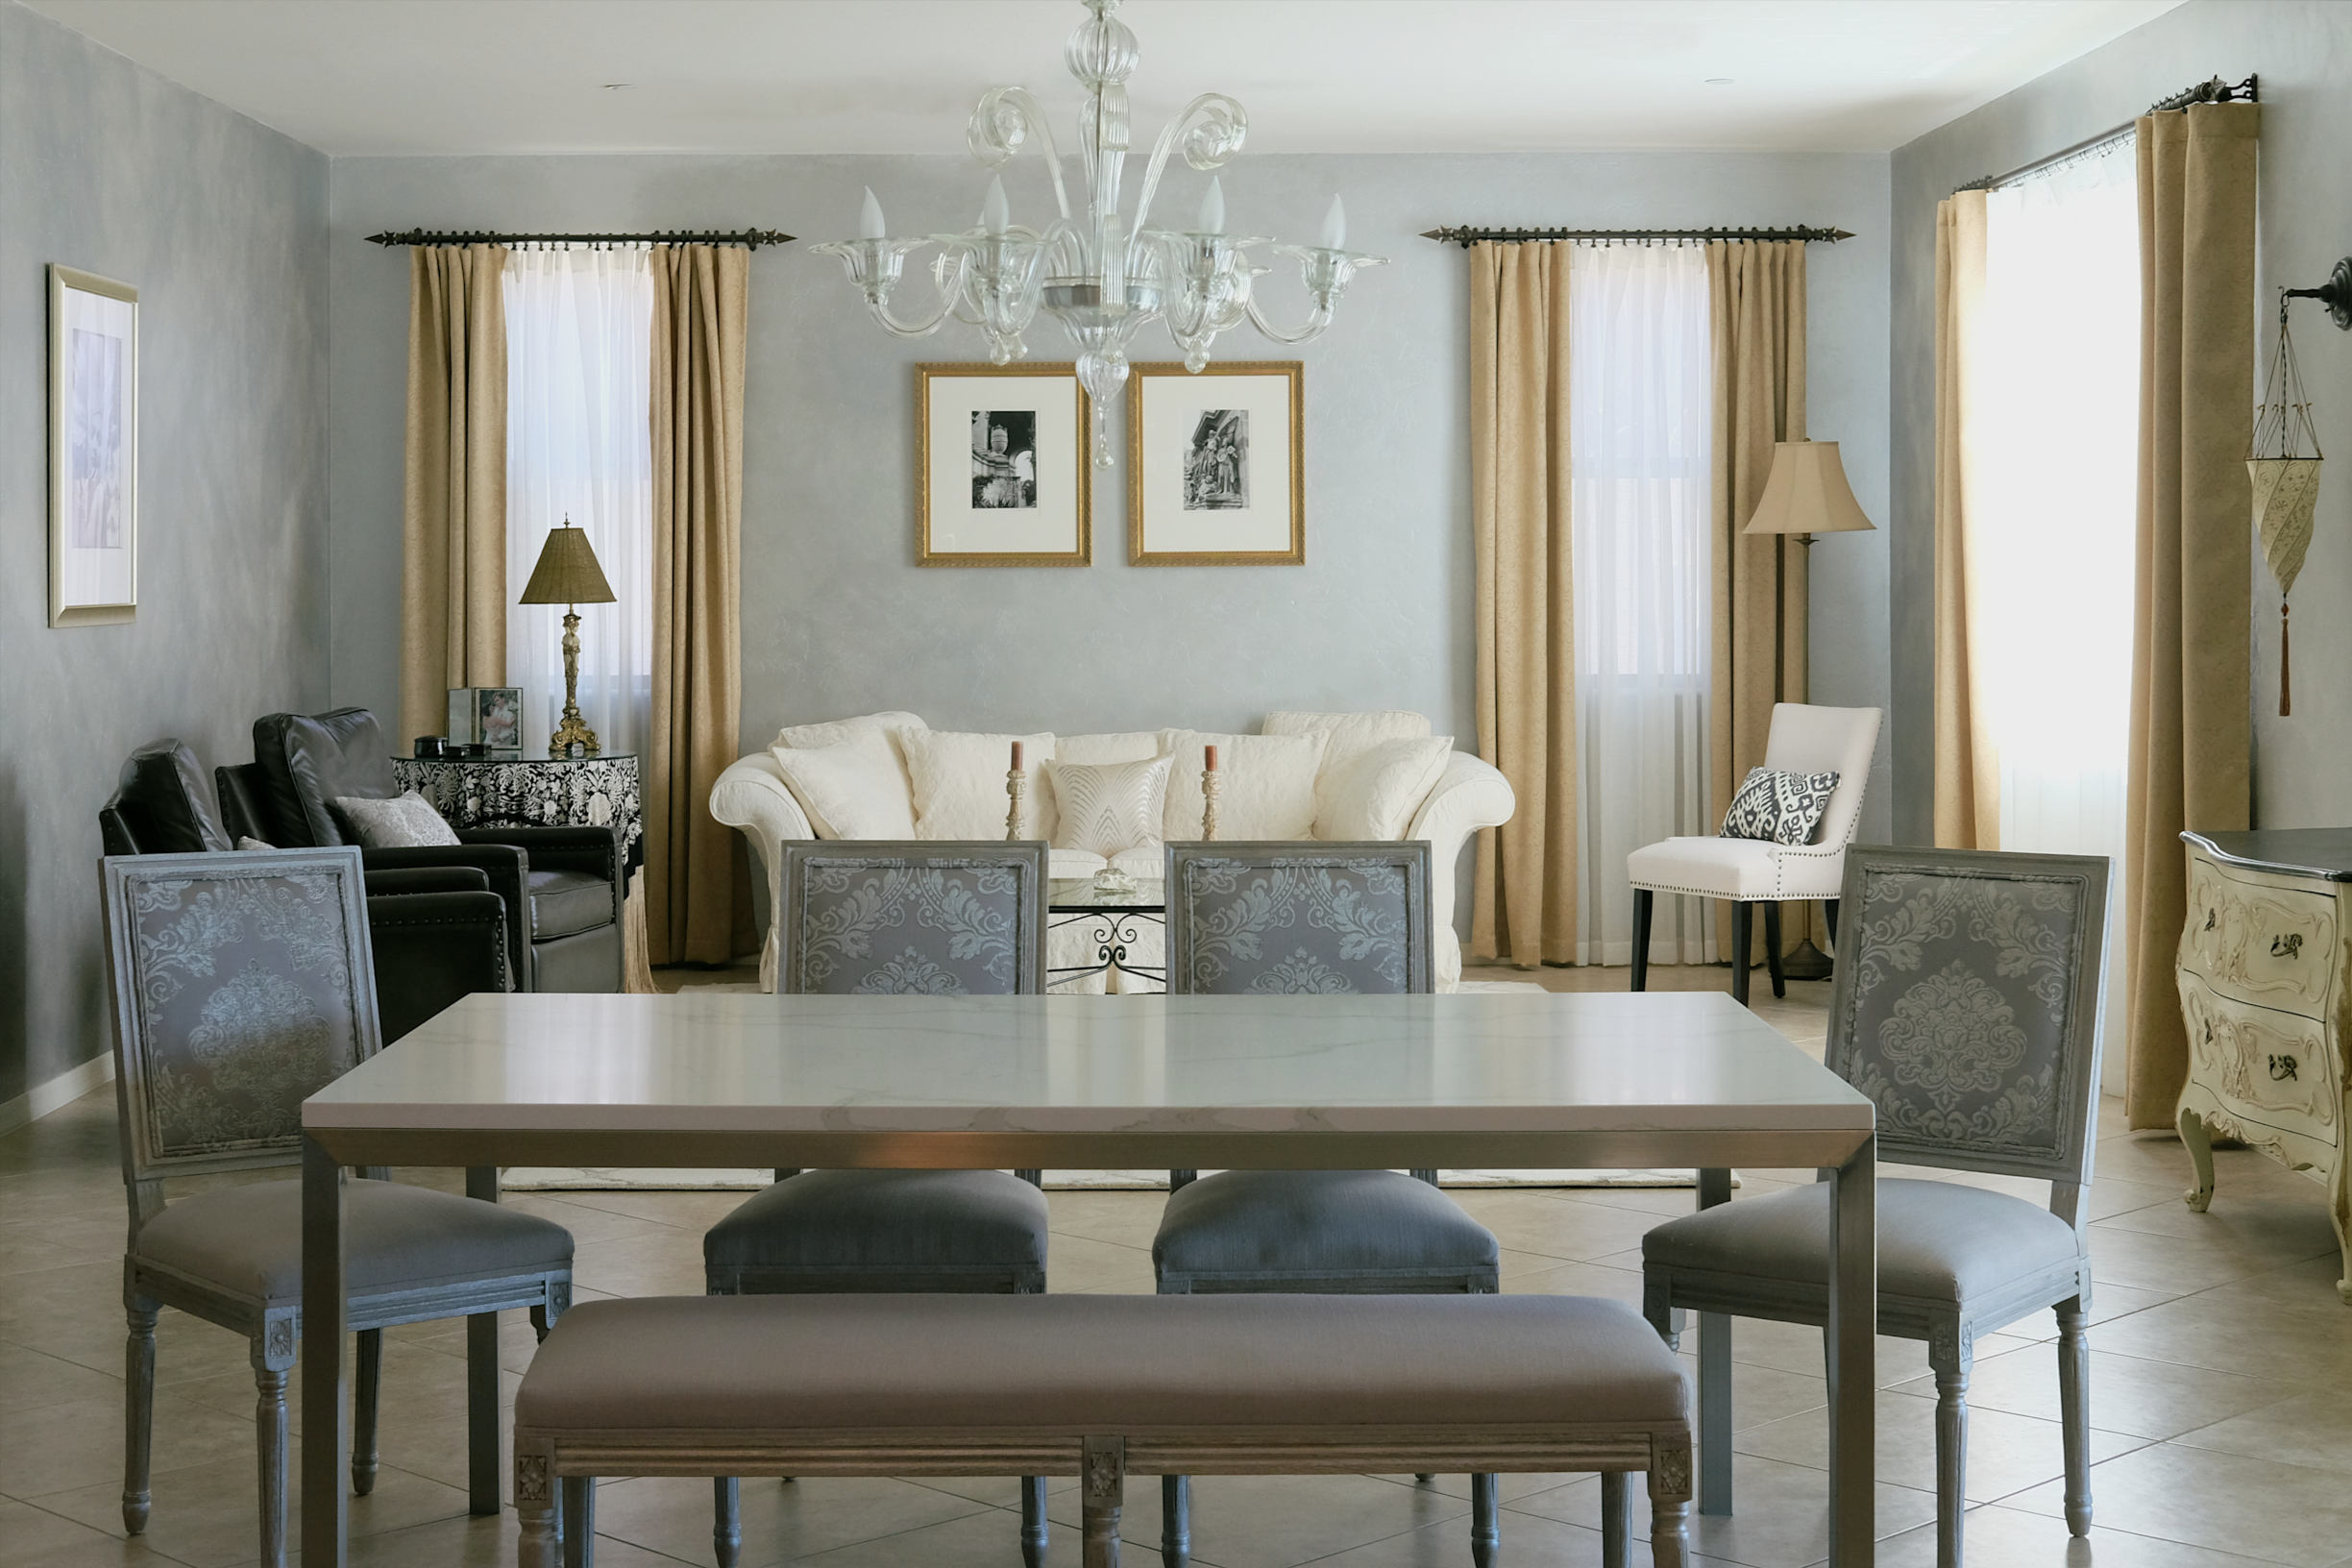 Tucson interior design featuring Venetian Fortuny sconce, Murano glass chandelier, brocade velvet French Louis XVI dining chairs, and silver glazed walls